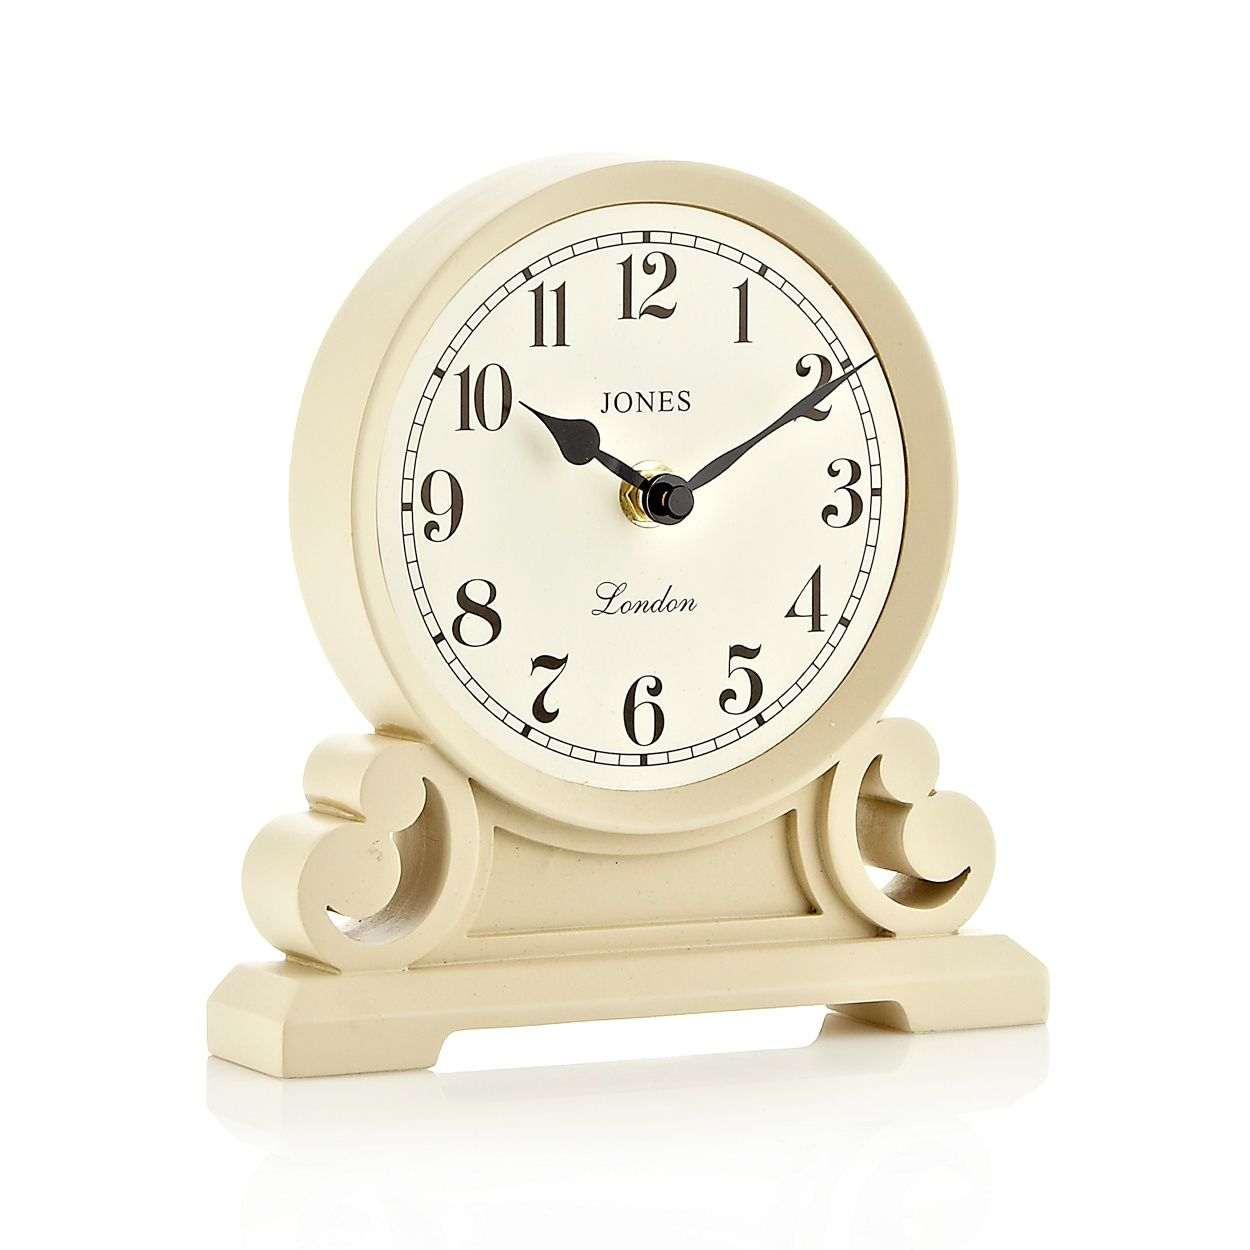 Jones White Middleton Mantel Clock At Debenhams Com Mantel Clock Clock Mantel Clocks